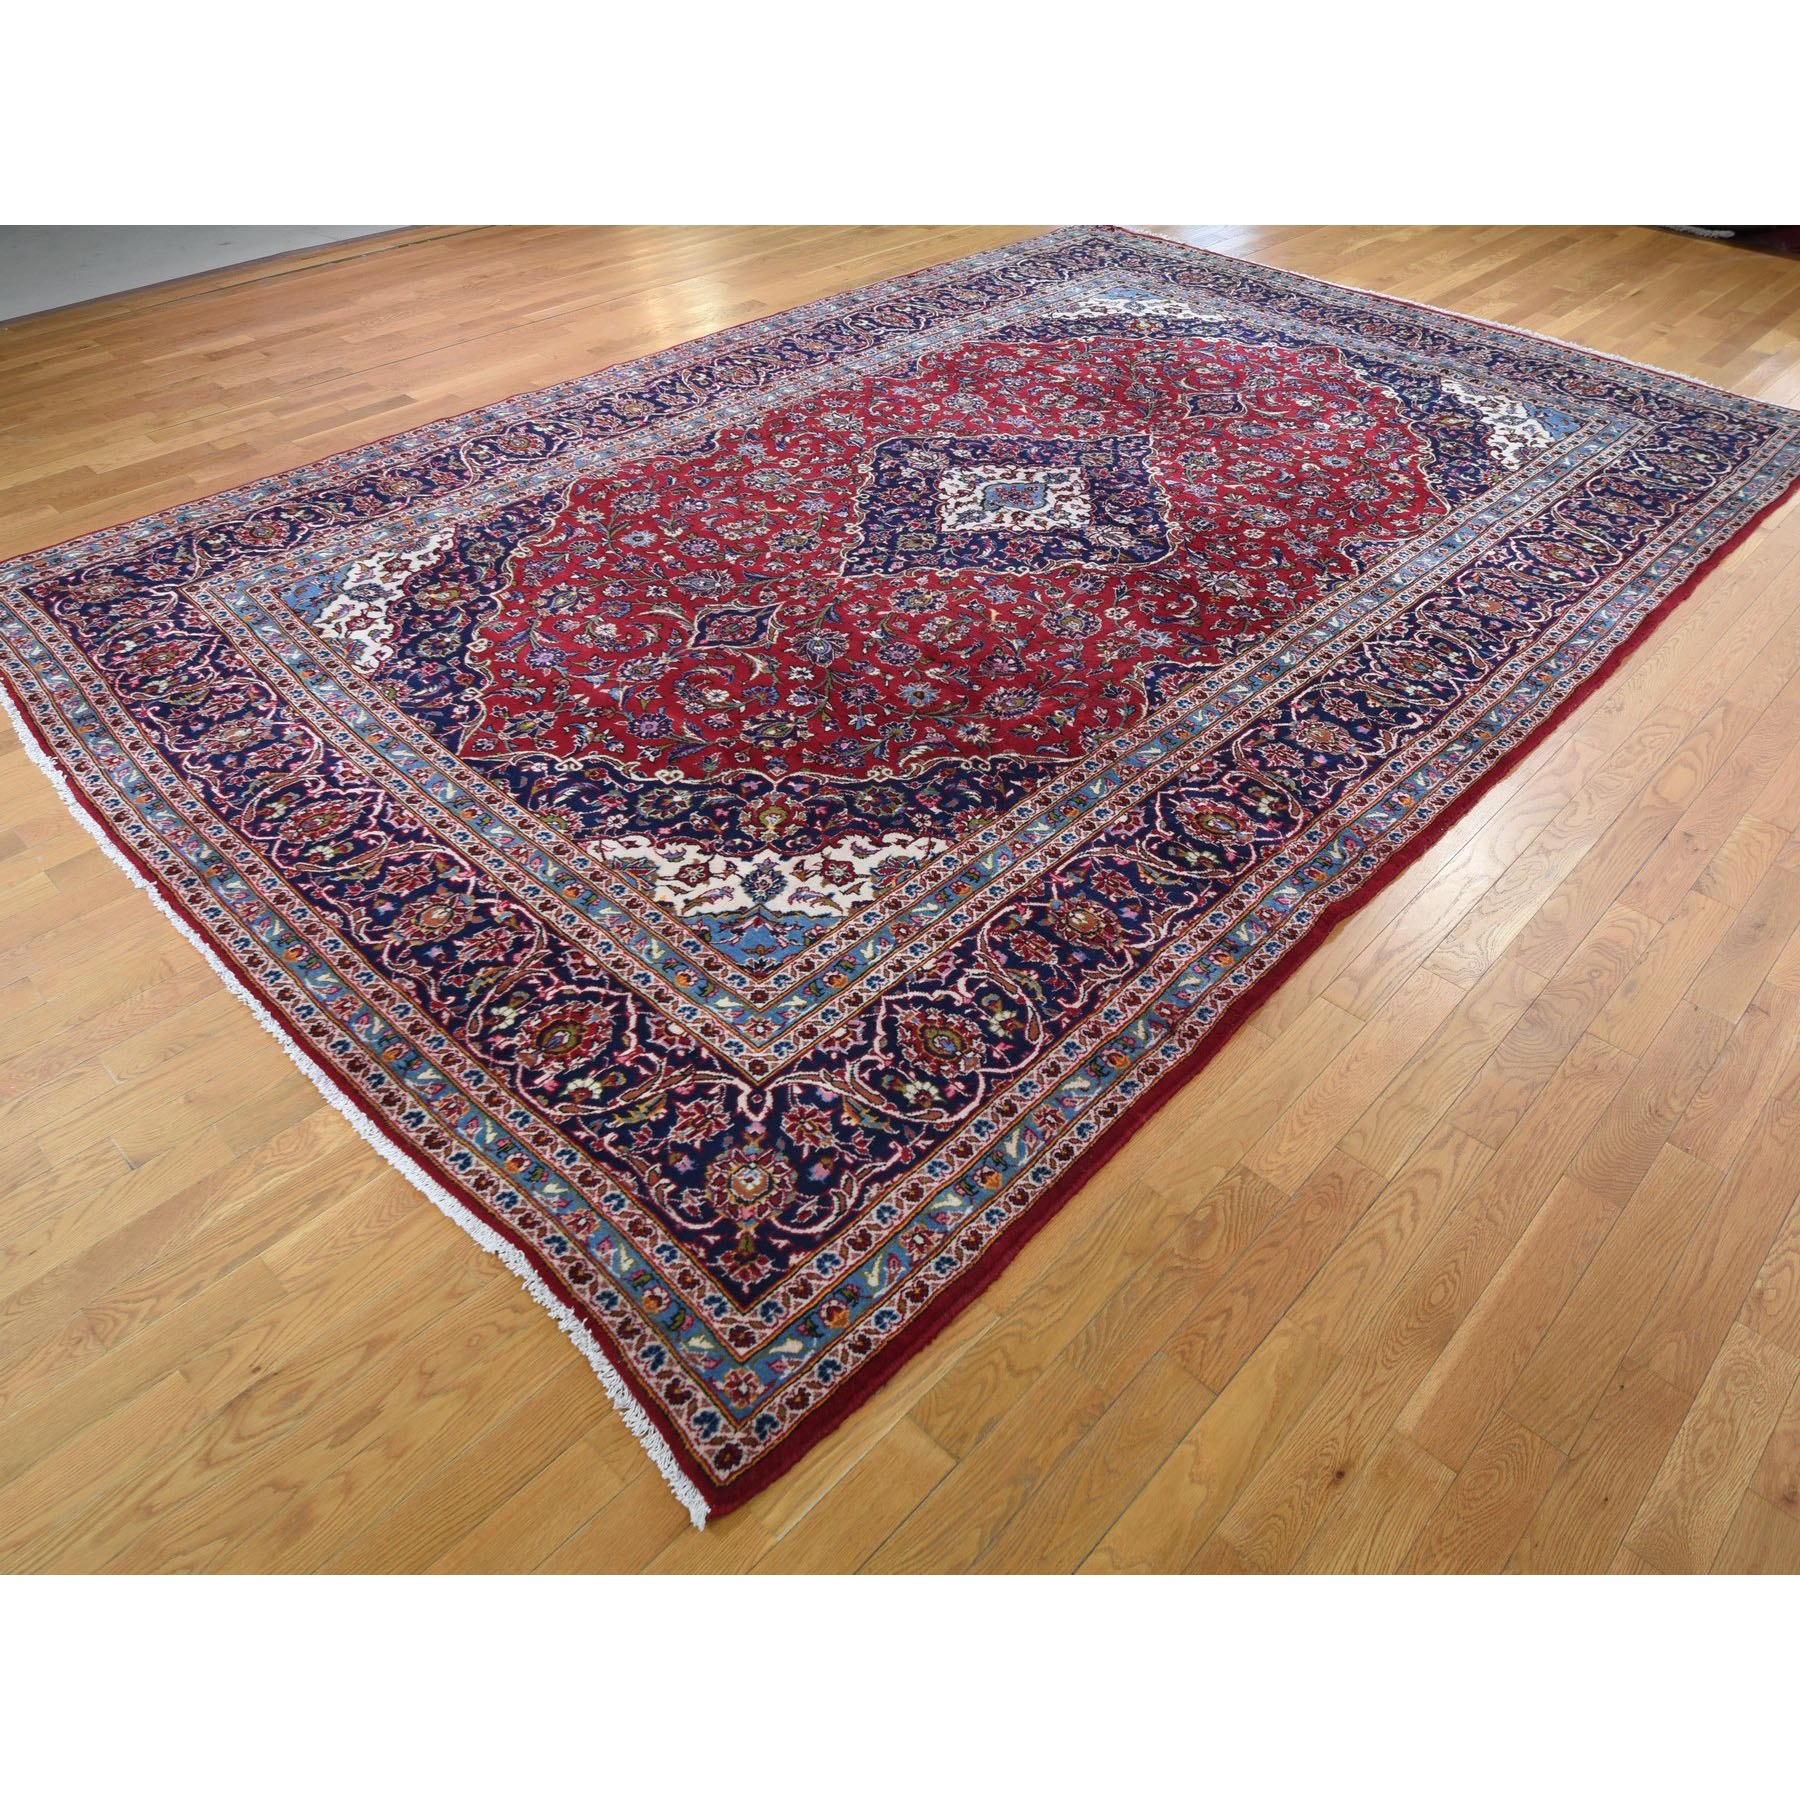 """9'8""""x14'4"""" Red Semi Antique Persian Kashan Full Pile Pure Wool Hand Knotted Oriental Rug"""